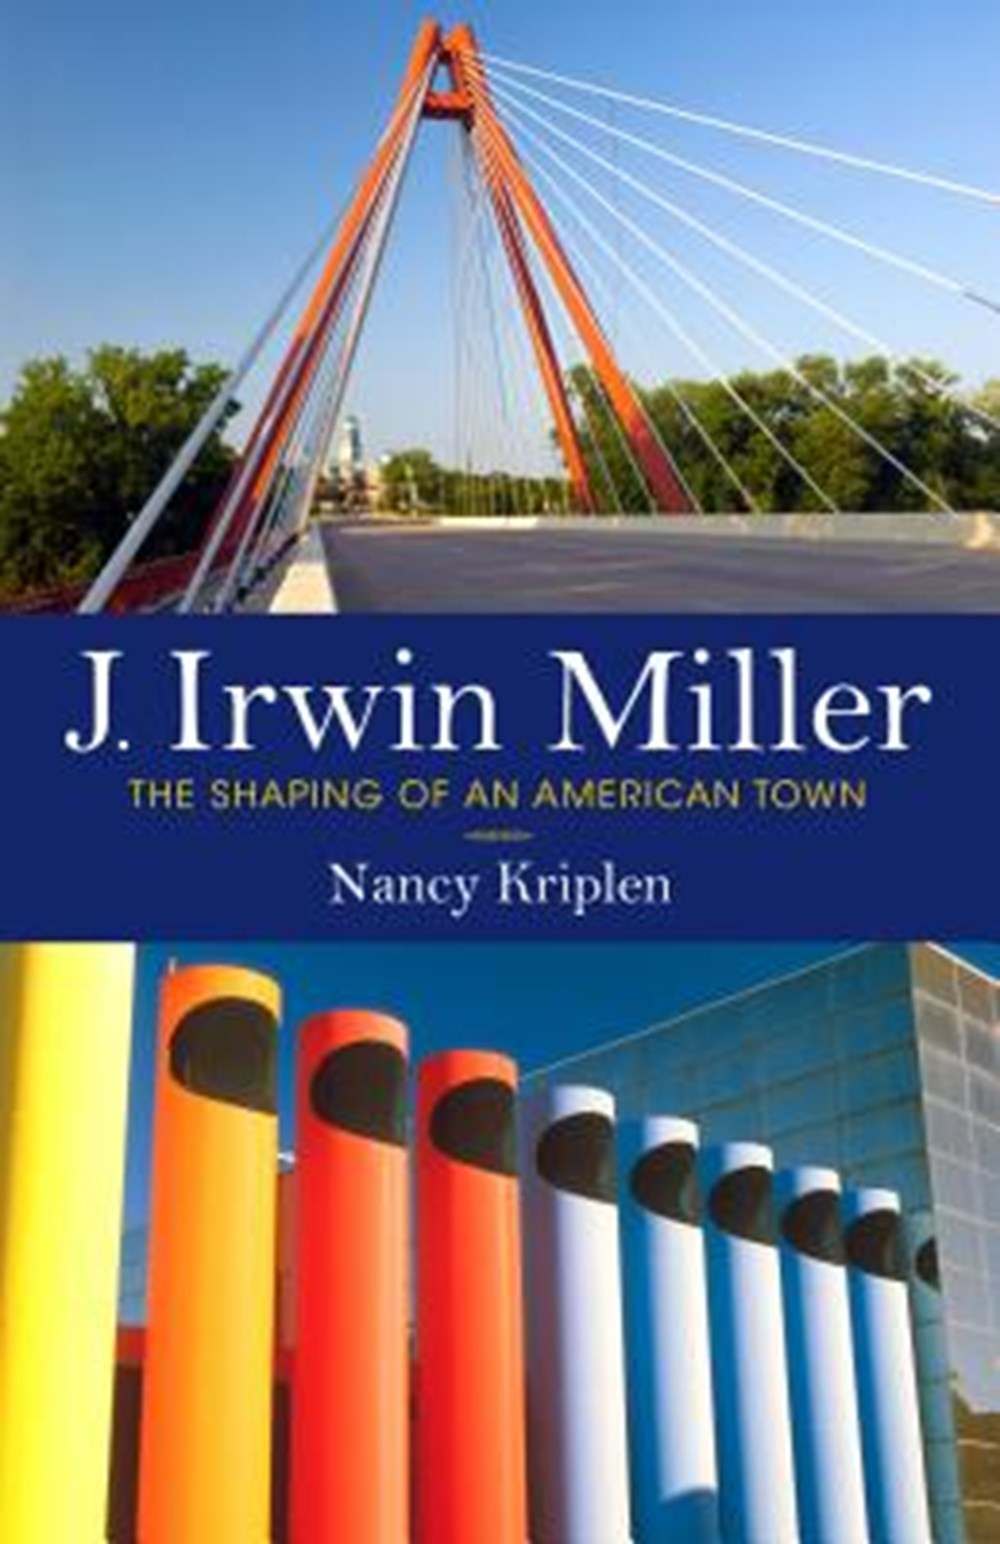 J. Irwin Miller The Shaping of an American Town